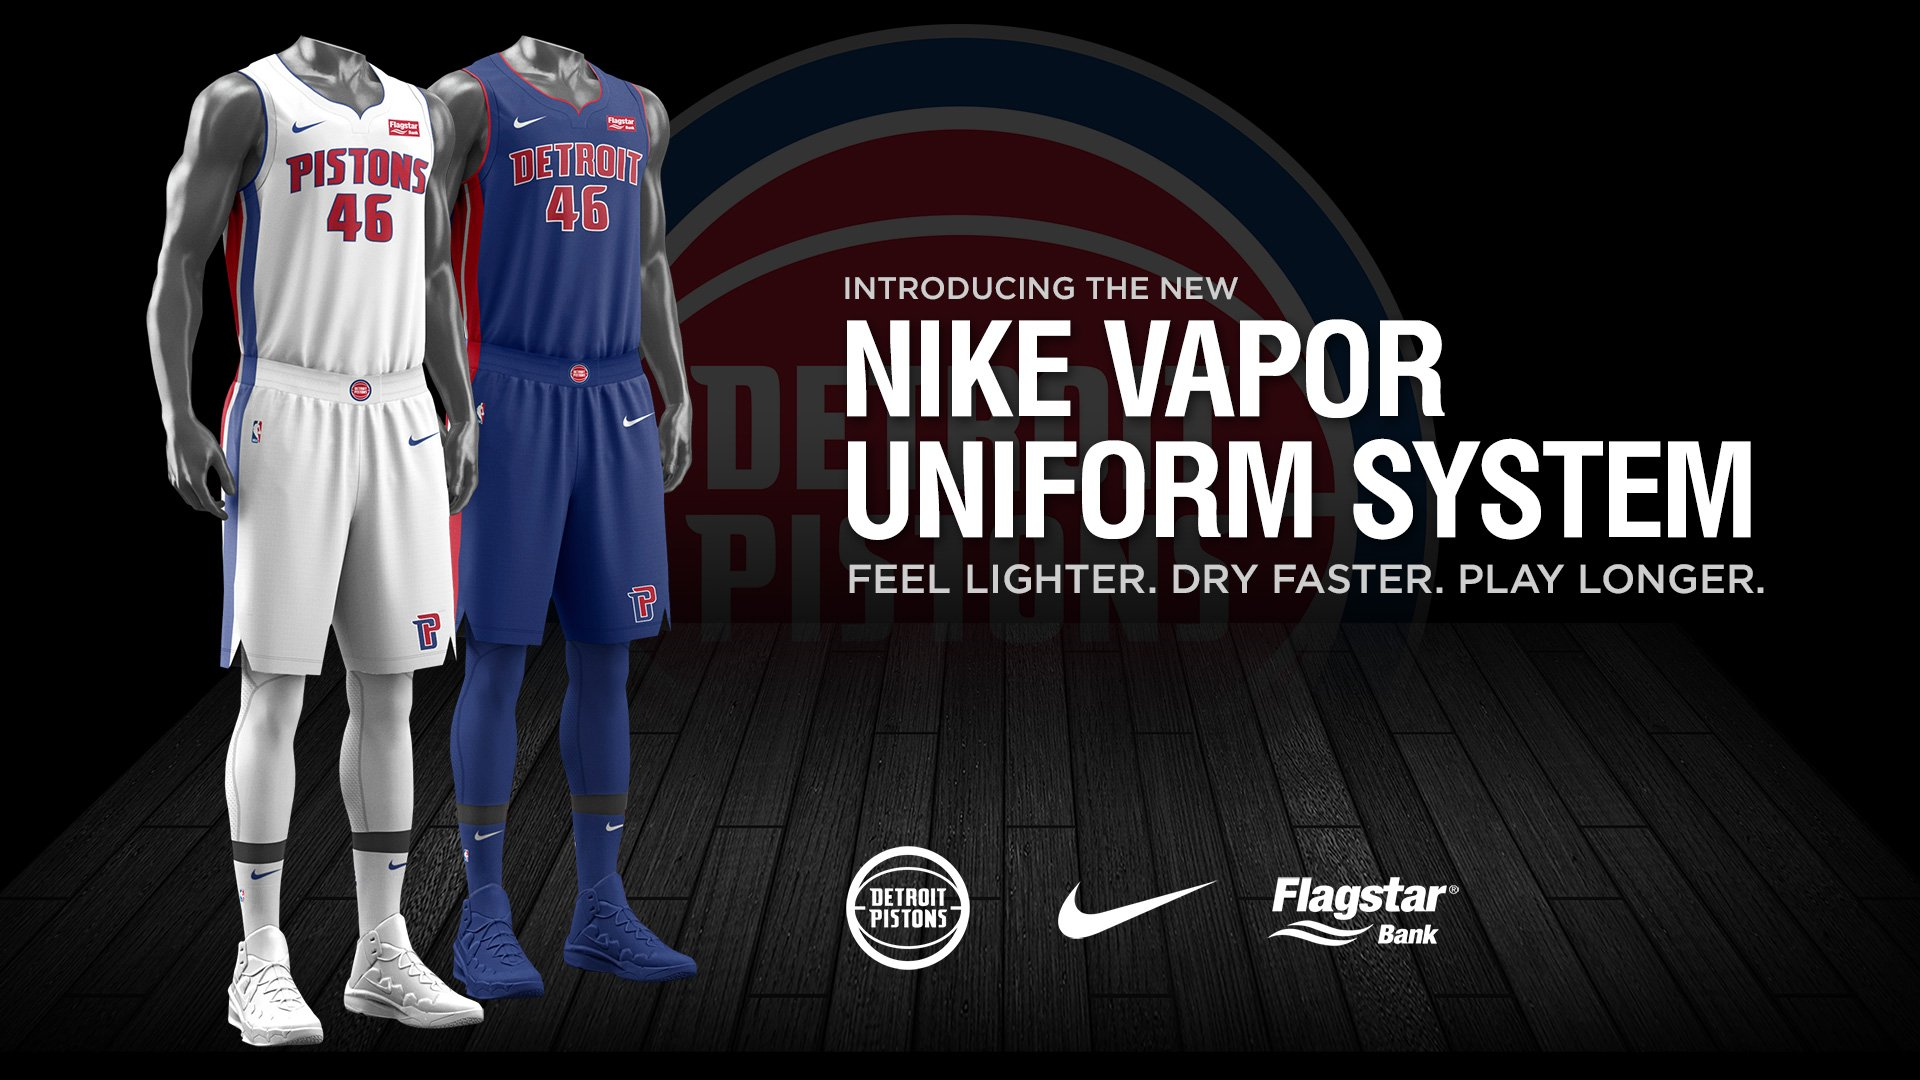 6b5991080b9 Nike s jerseys will come with matching tights that many players already  wear underneath their shorts.